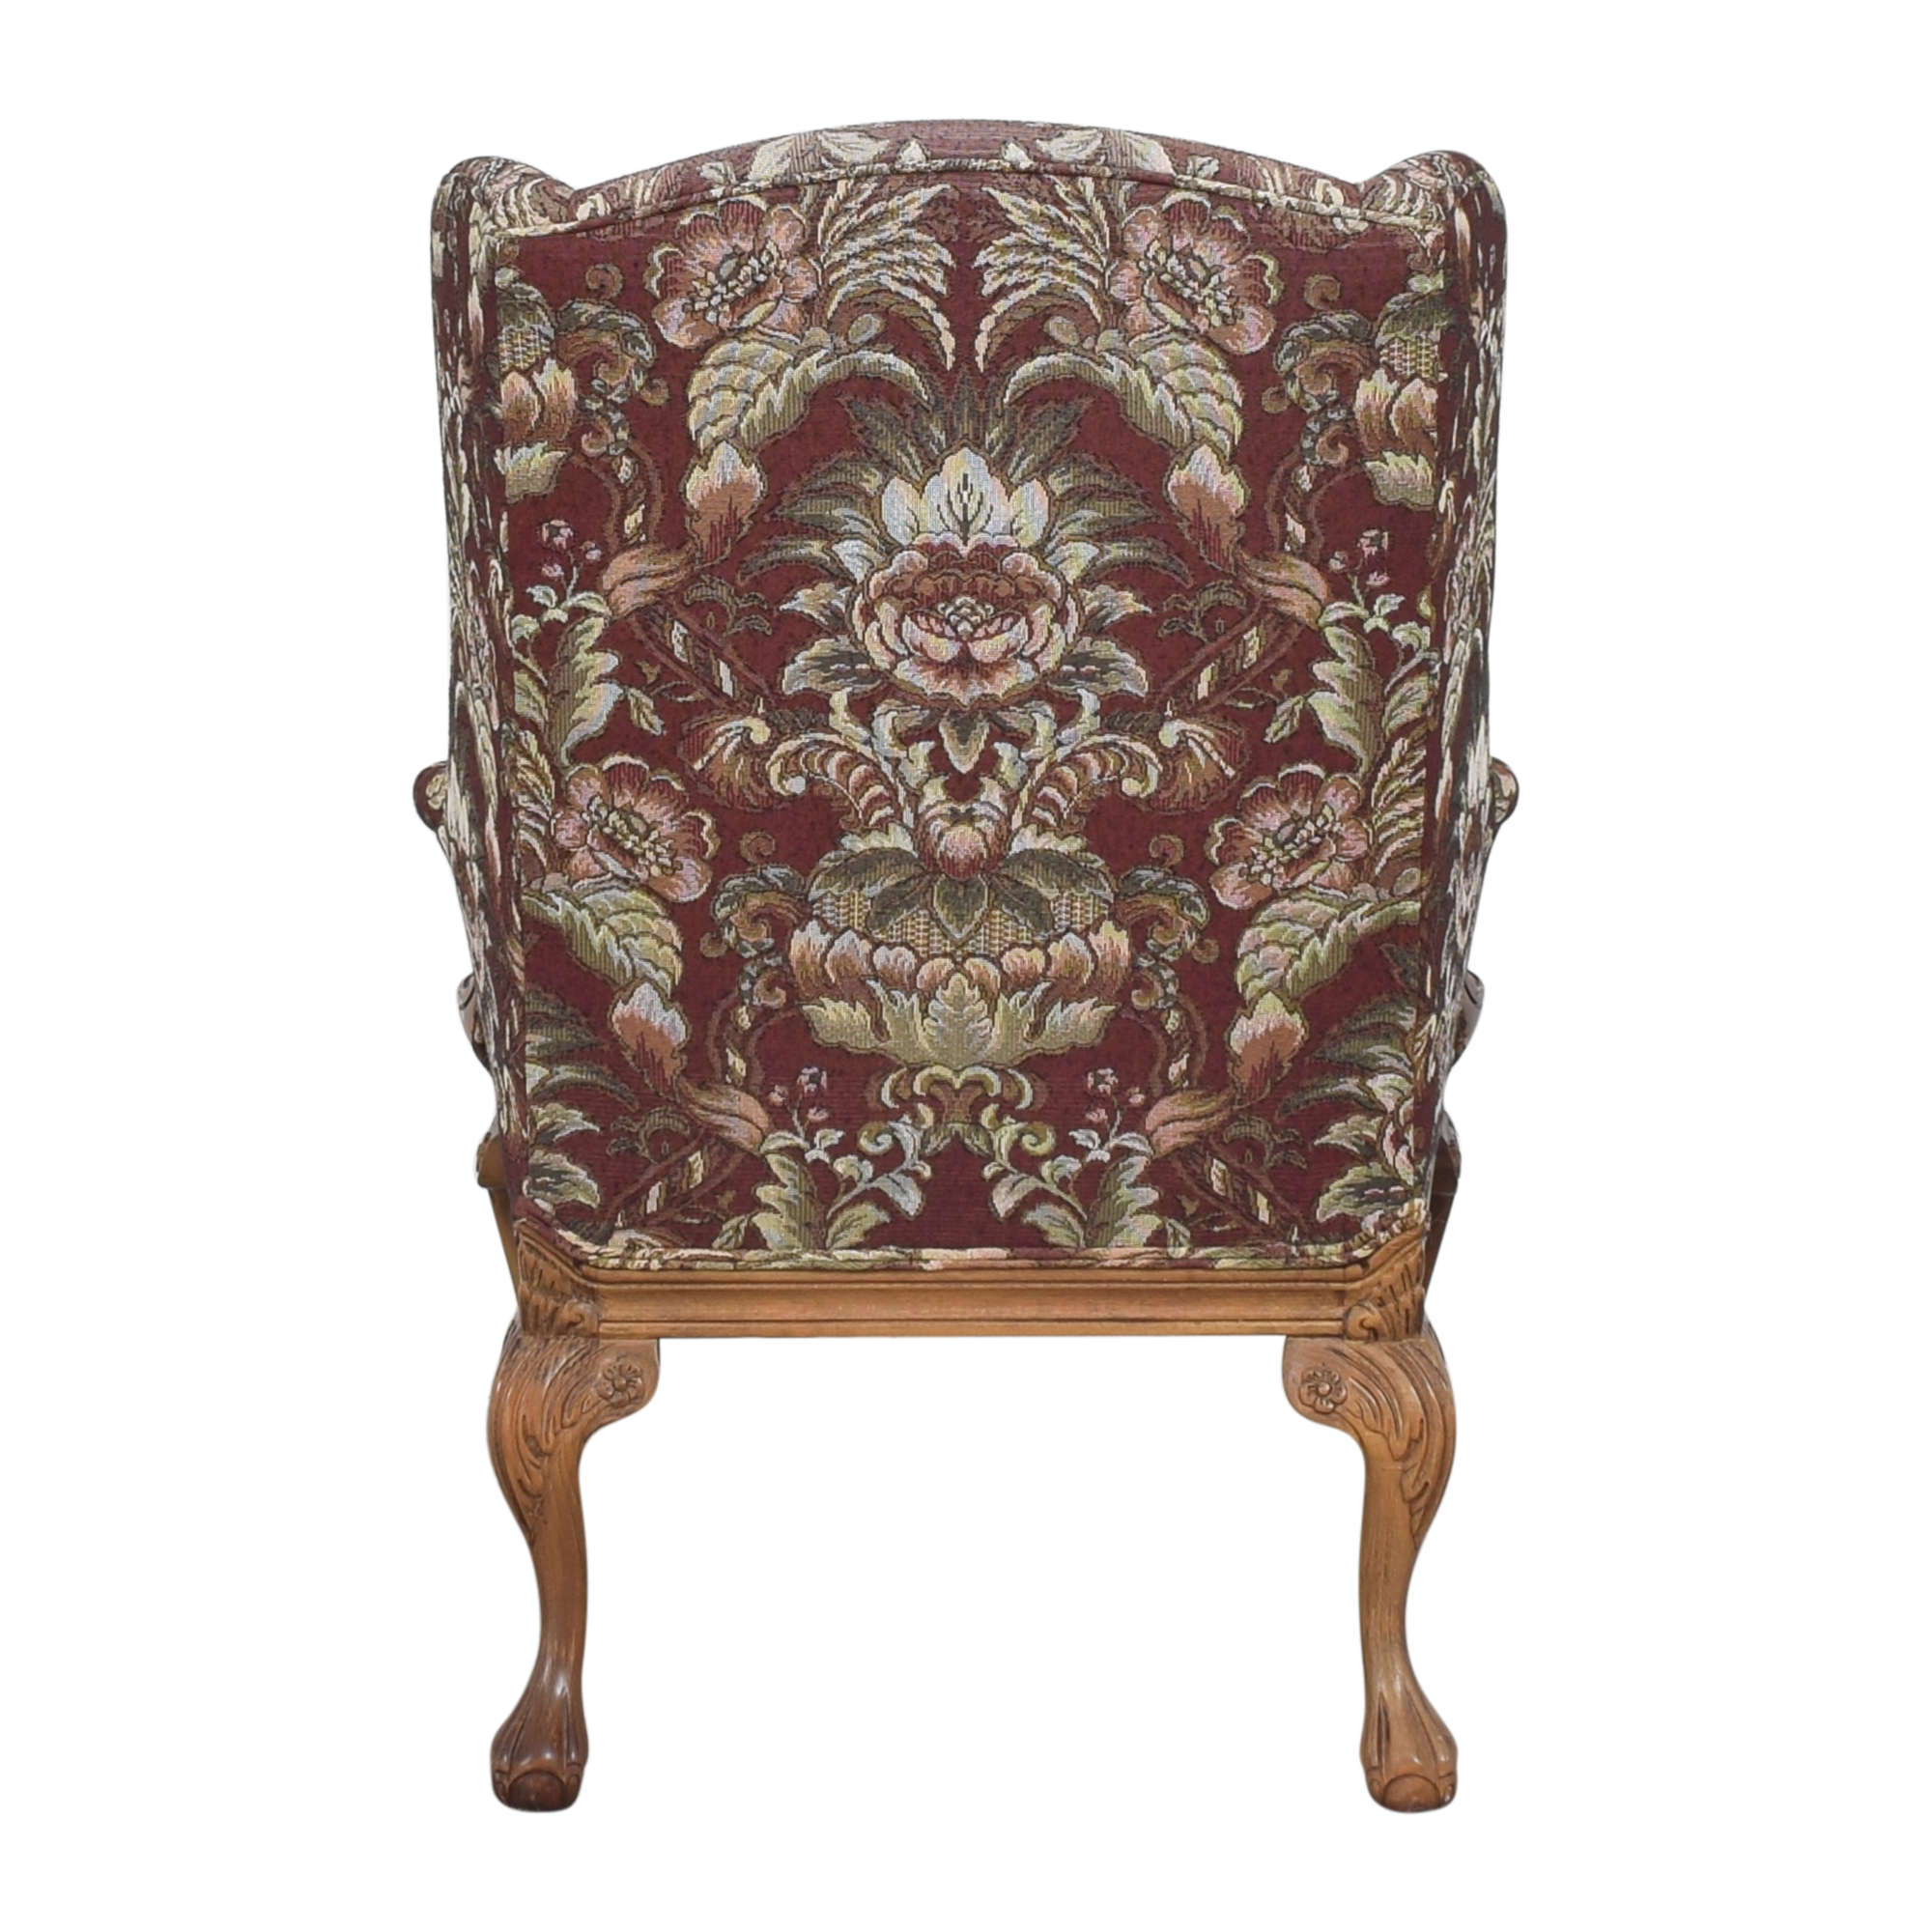 Drexel Heritage Drexel Heritage Wing Back Floral Chair ma